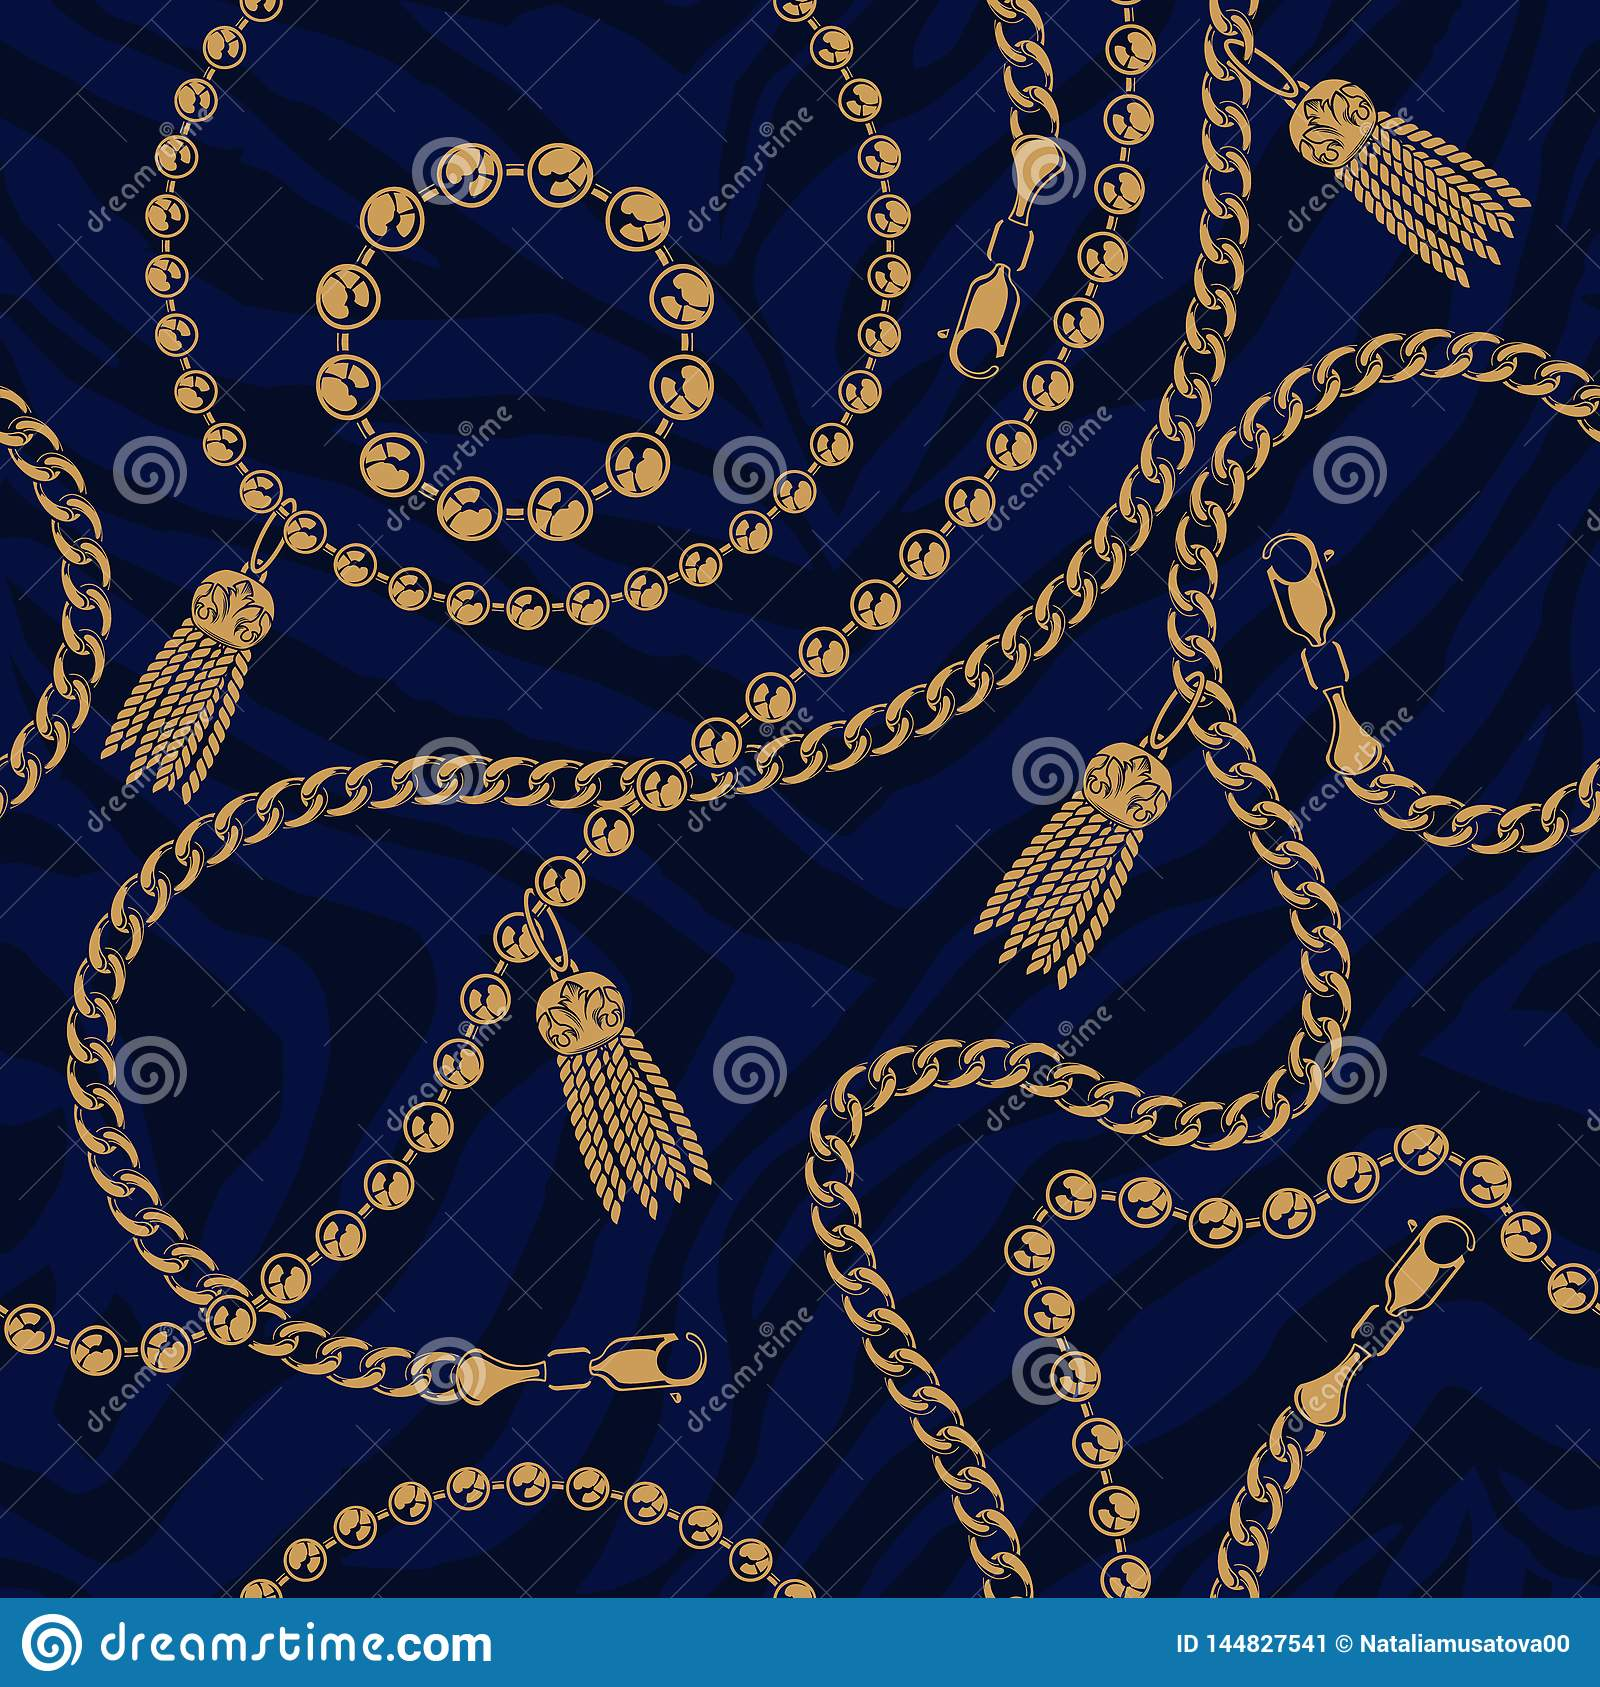 Seamless pattern of chains on the dark background